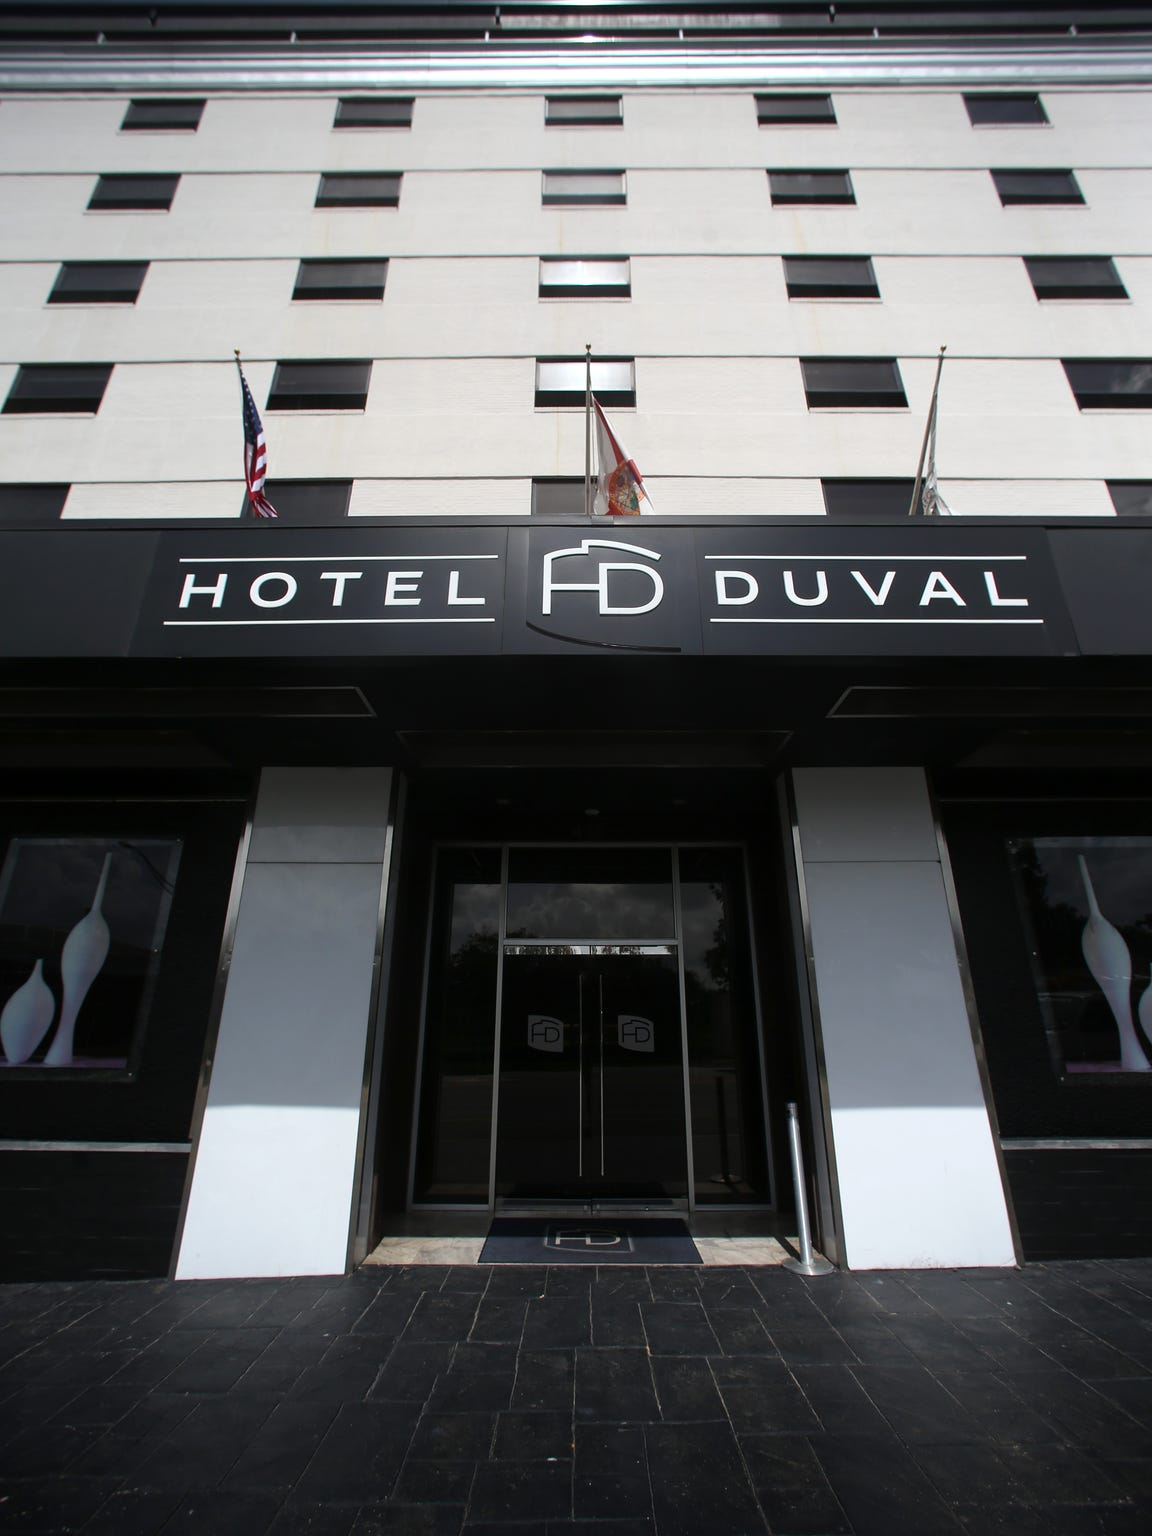 The Hotel Duval in downtown Tallahassee